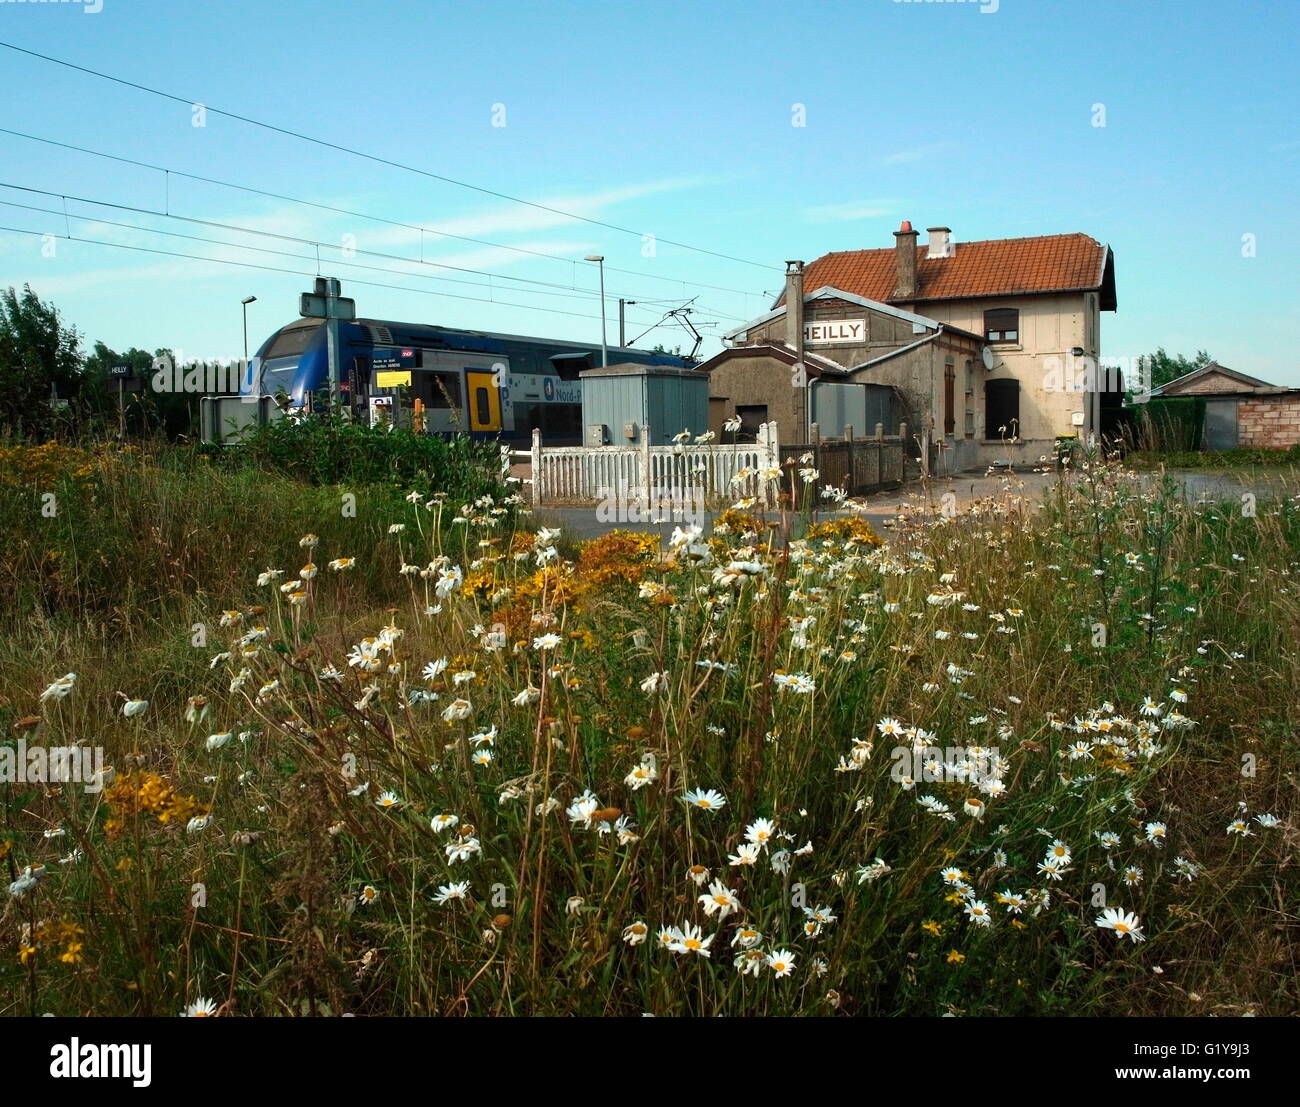 AJAXNETPHOTO. 2015. HEILLY, FRANCE. - STATION HOUSE - TRAIN STATION FROM WHERE BATTLE OF THE SOMME CASUALTIES WERE - Stock Image